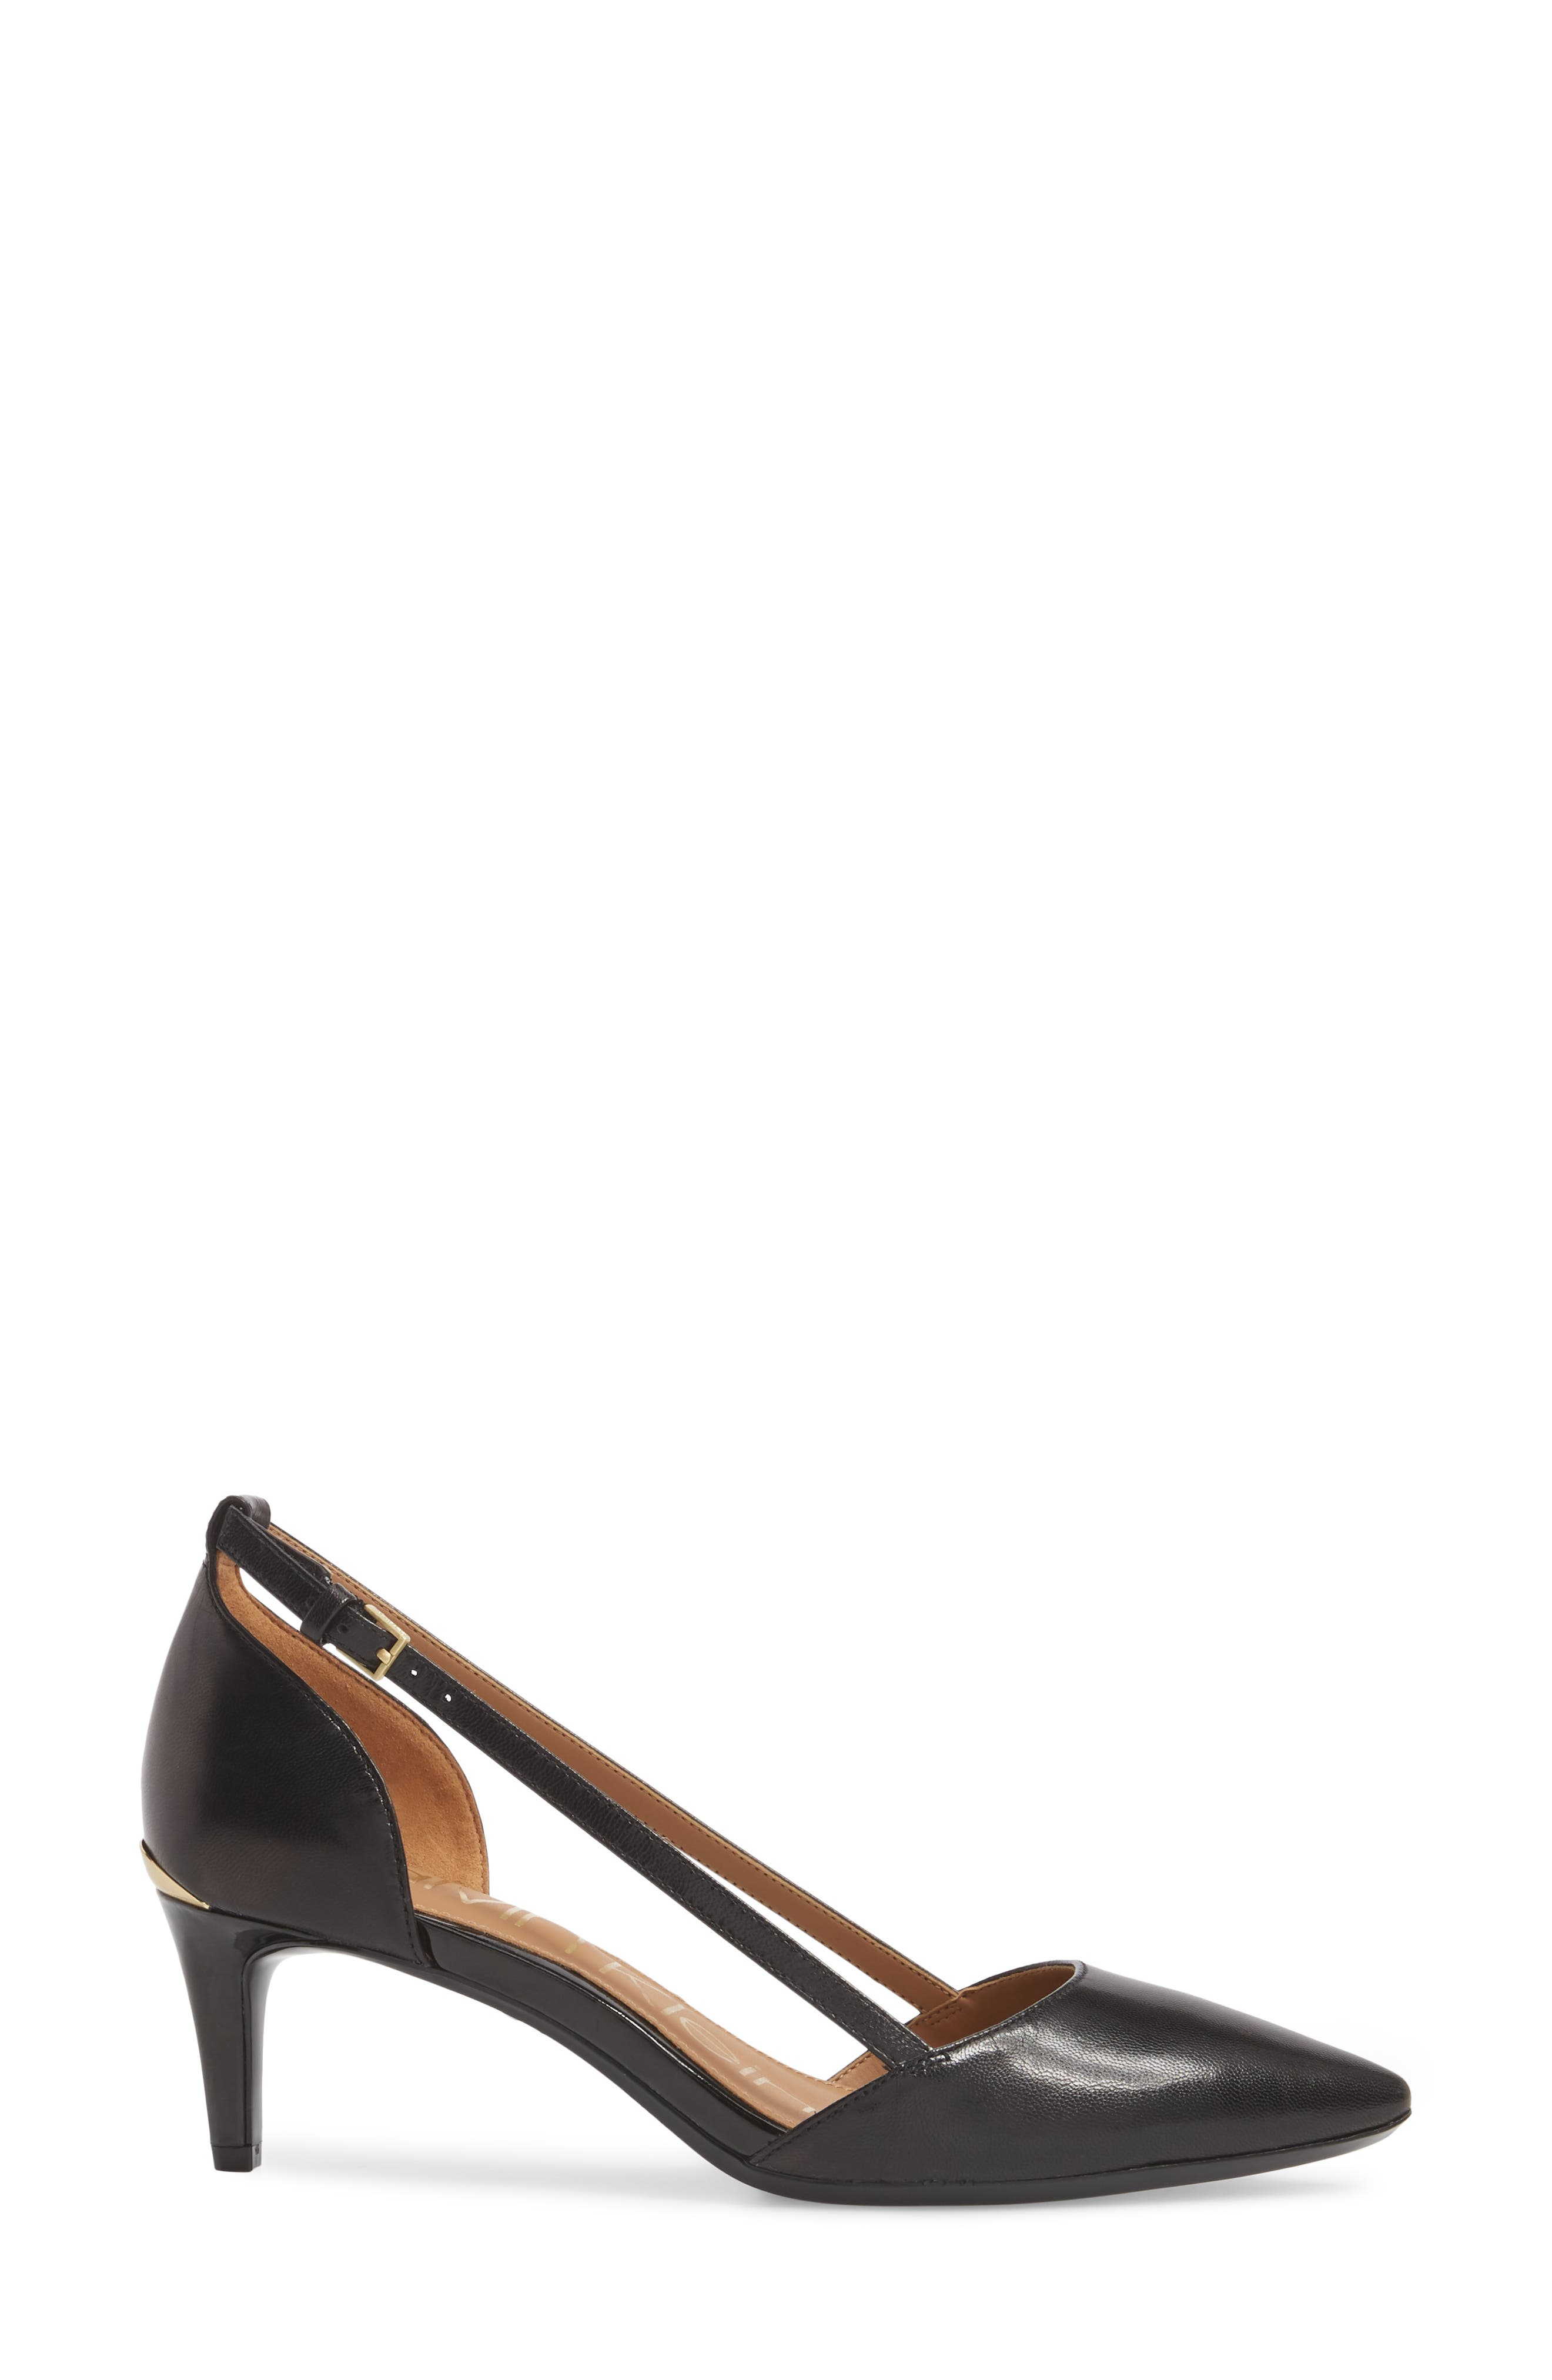 CALVIN KLEIN, Pashka Strappy Open Sided Pump, Alternate thumbnail 3, color, 001